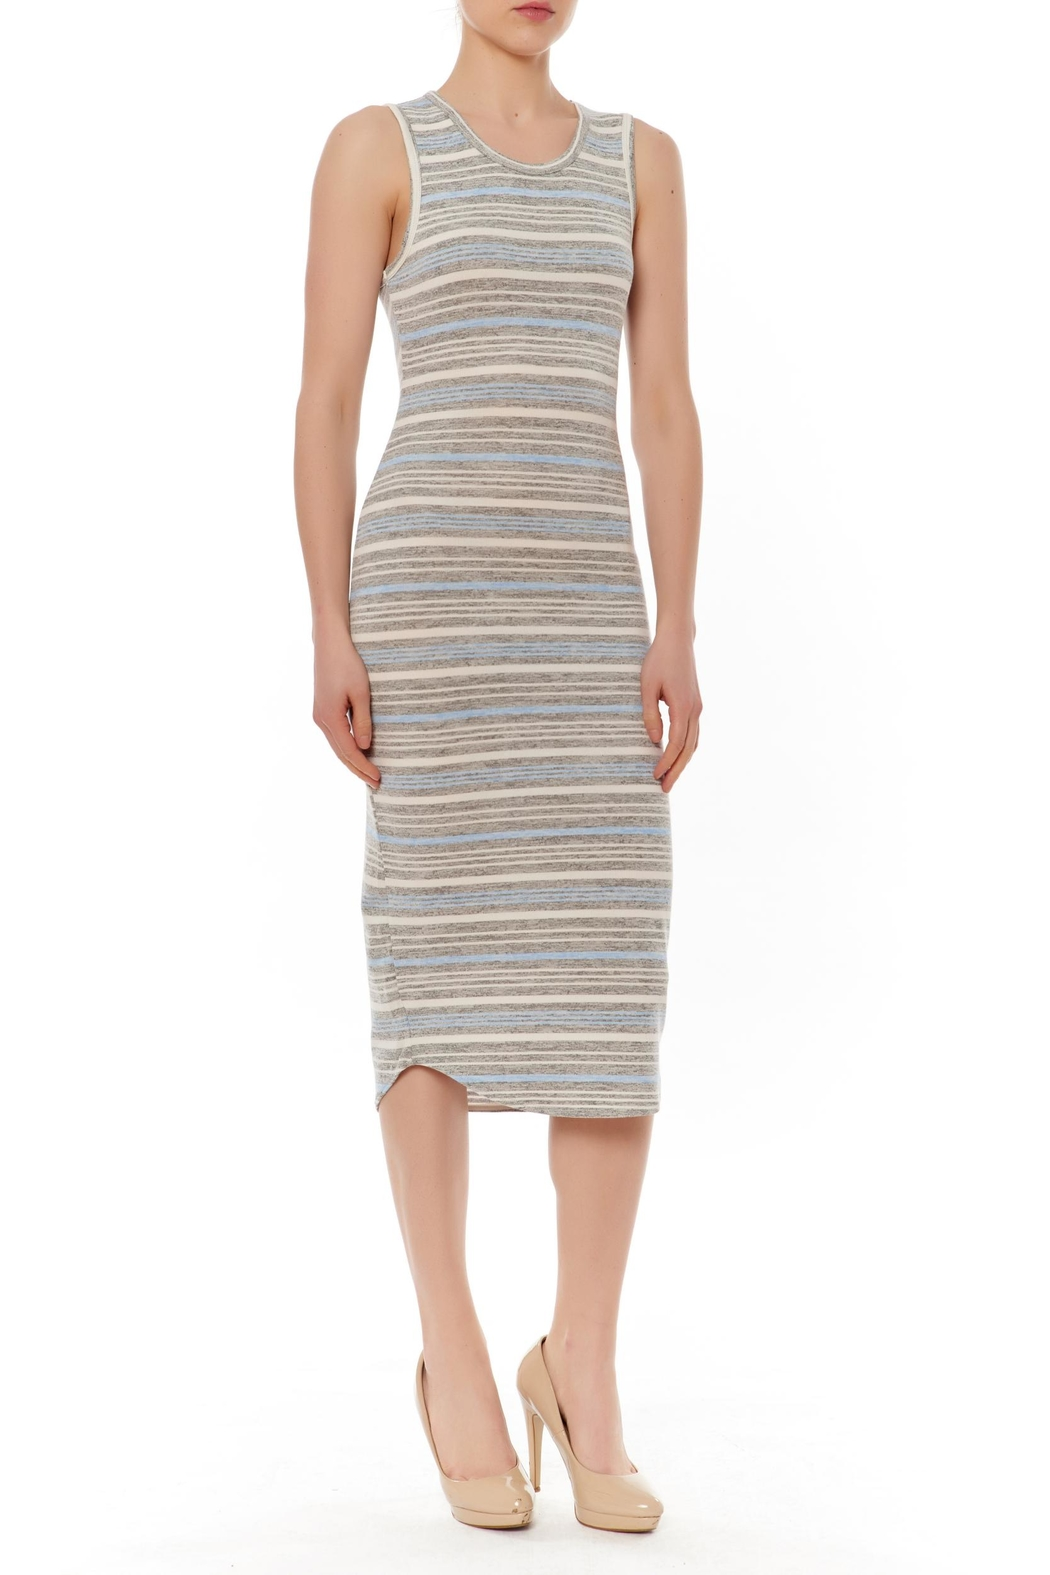 J HARPER Multi Stripe Dress - Front Cropped Image